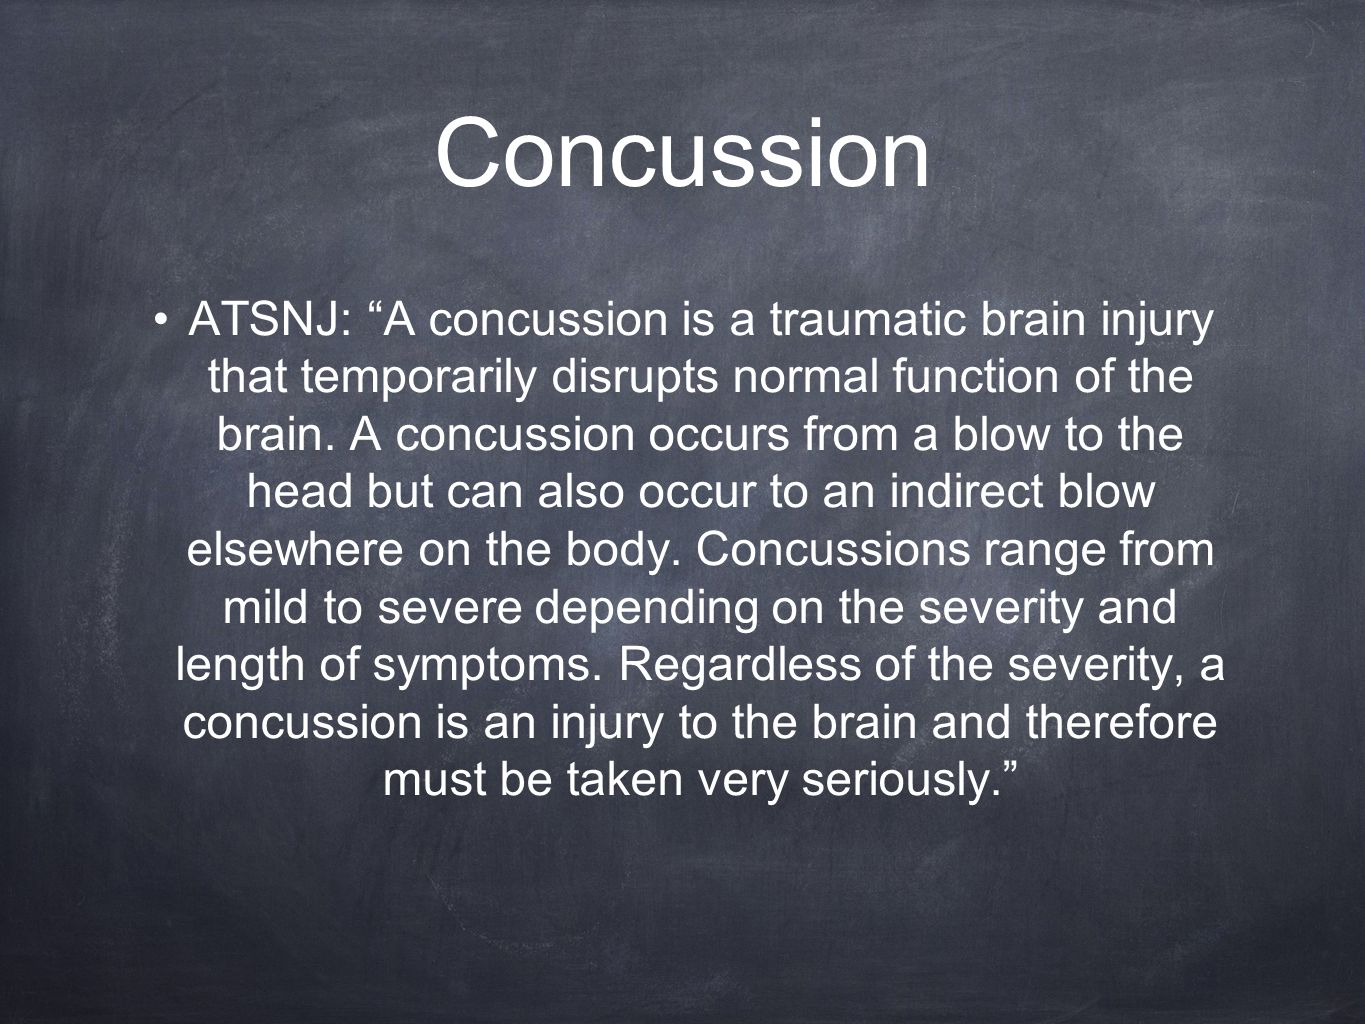 Concussion ATSNJ: A concussion is a traumatic brain injury that temporarily disrupts normal function of the brain.